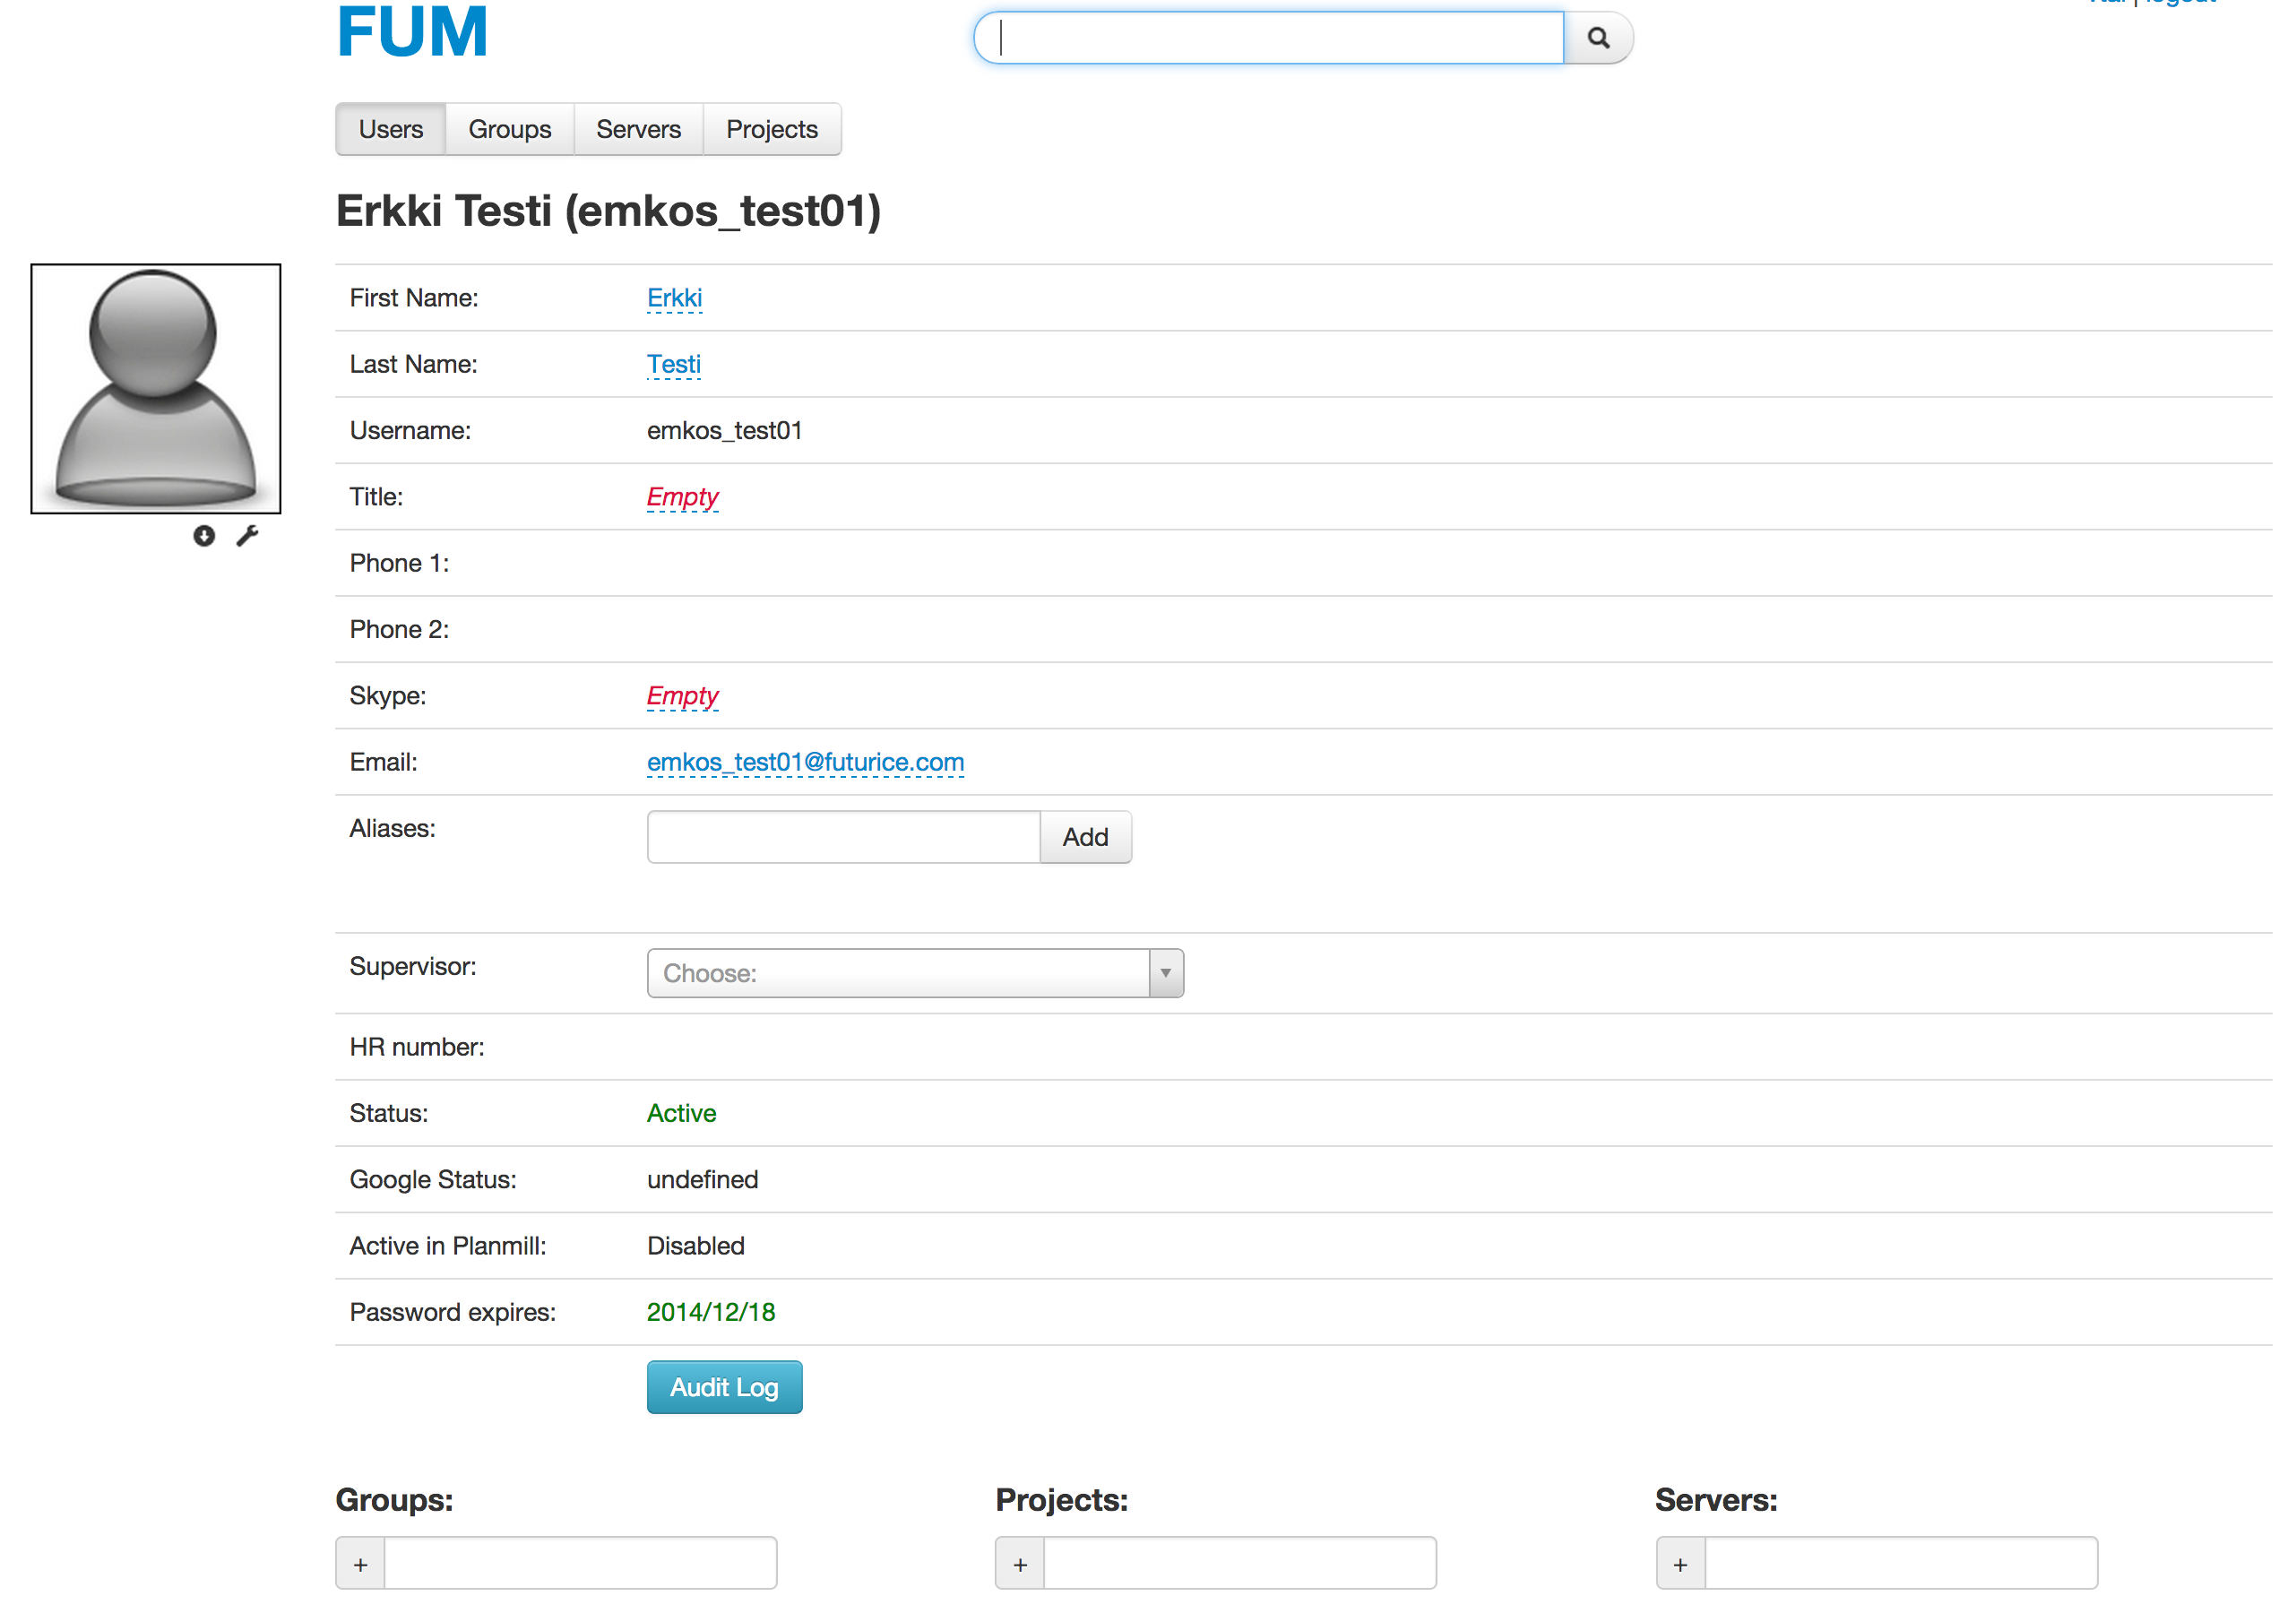 Profile view from FUM.